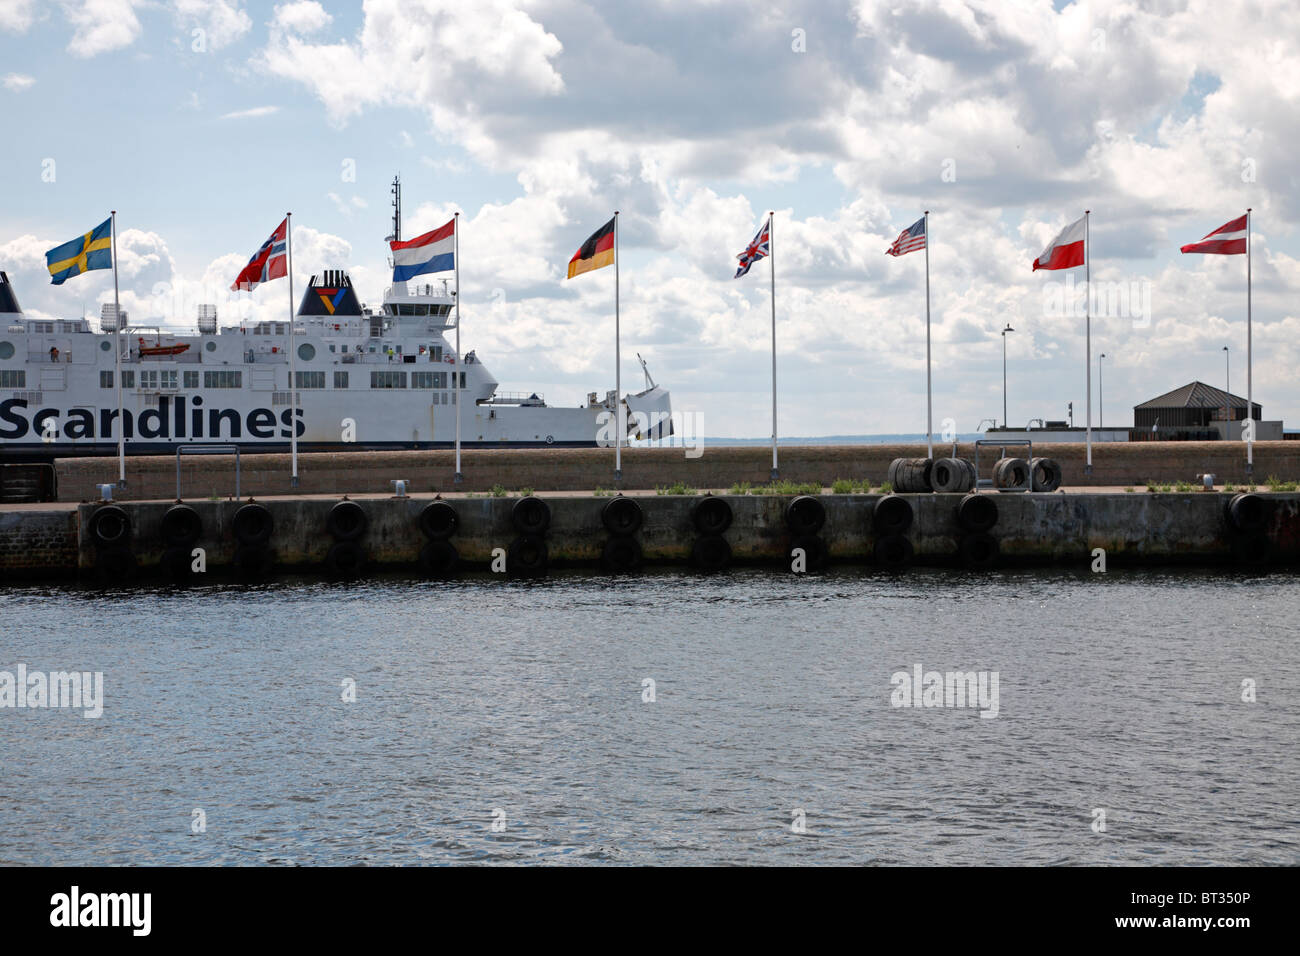 A Scandlines ferry from Sweden entering the berth in the port of Elsinore, Denmark. - Stock Image